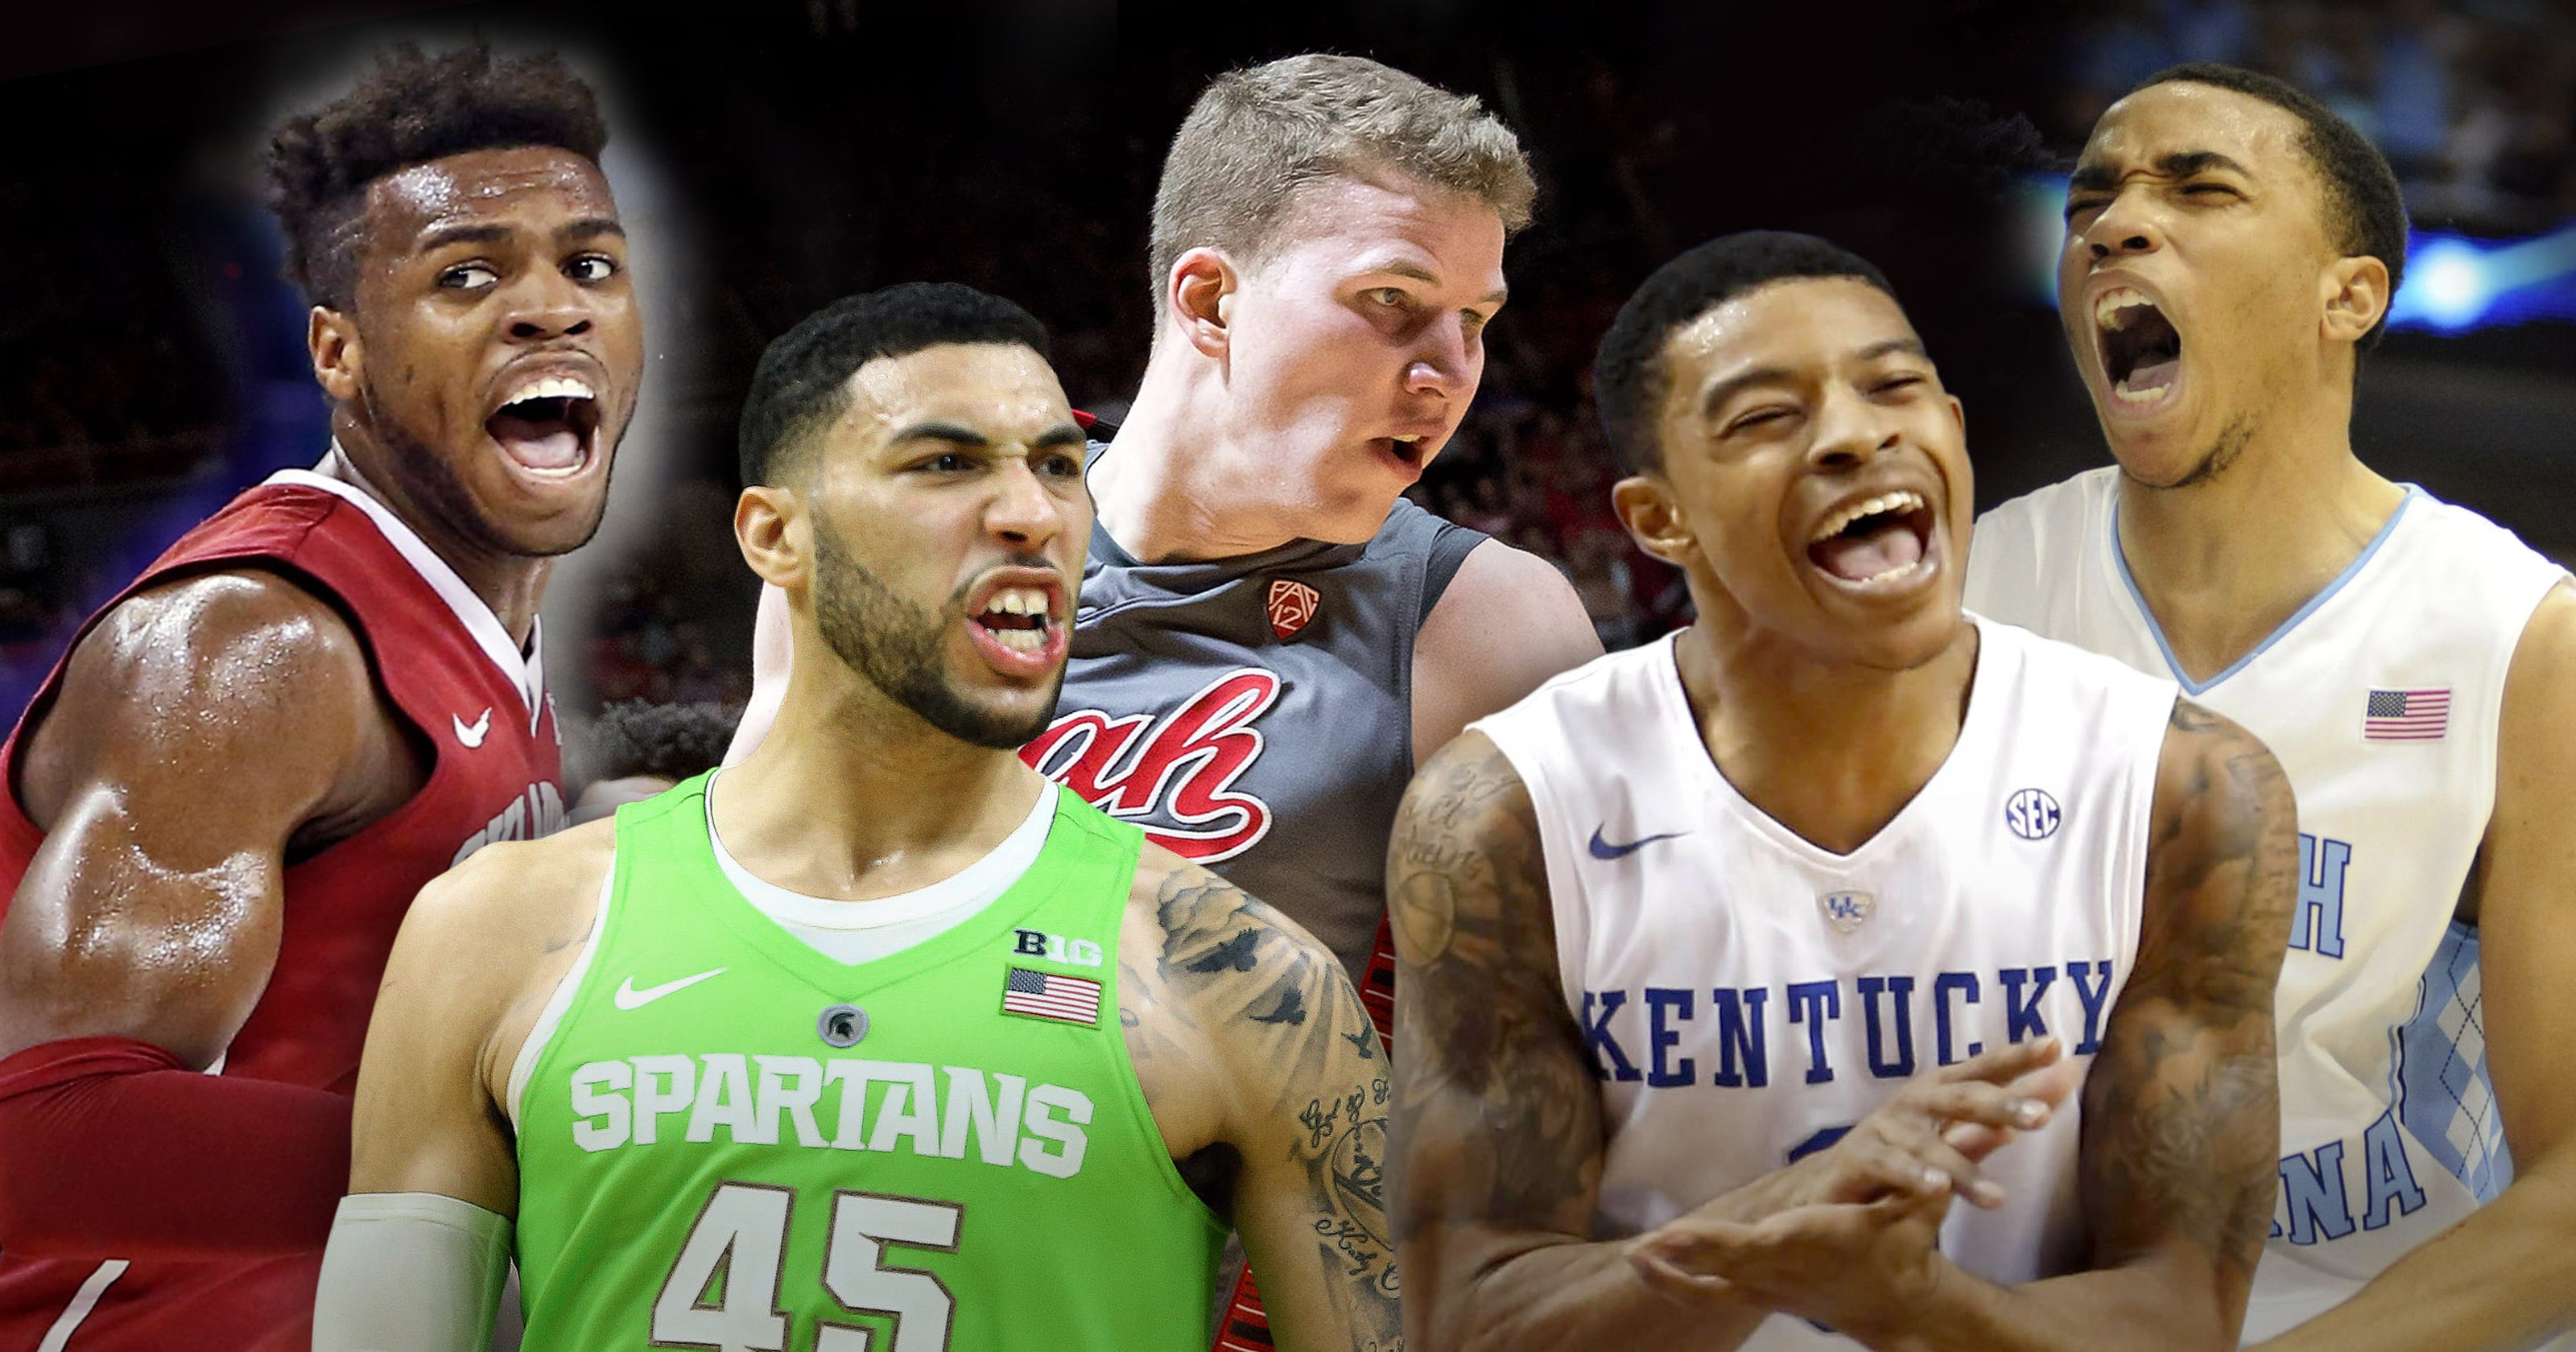 USA TODAY Sports All-America college basketball teams